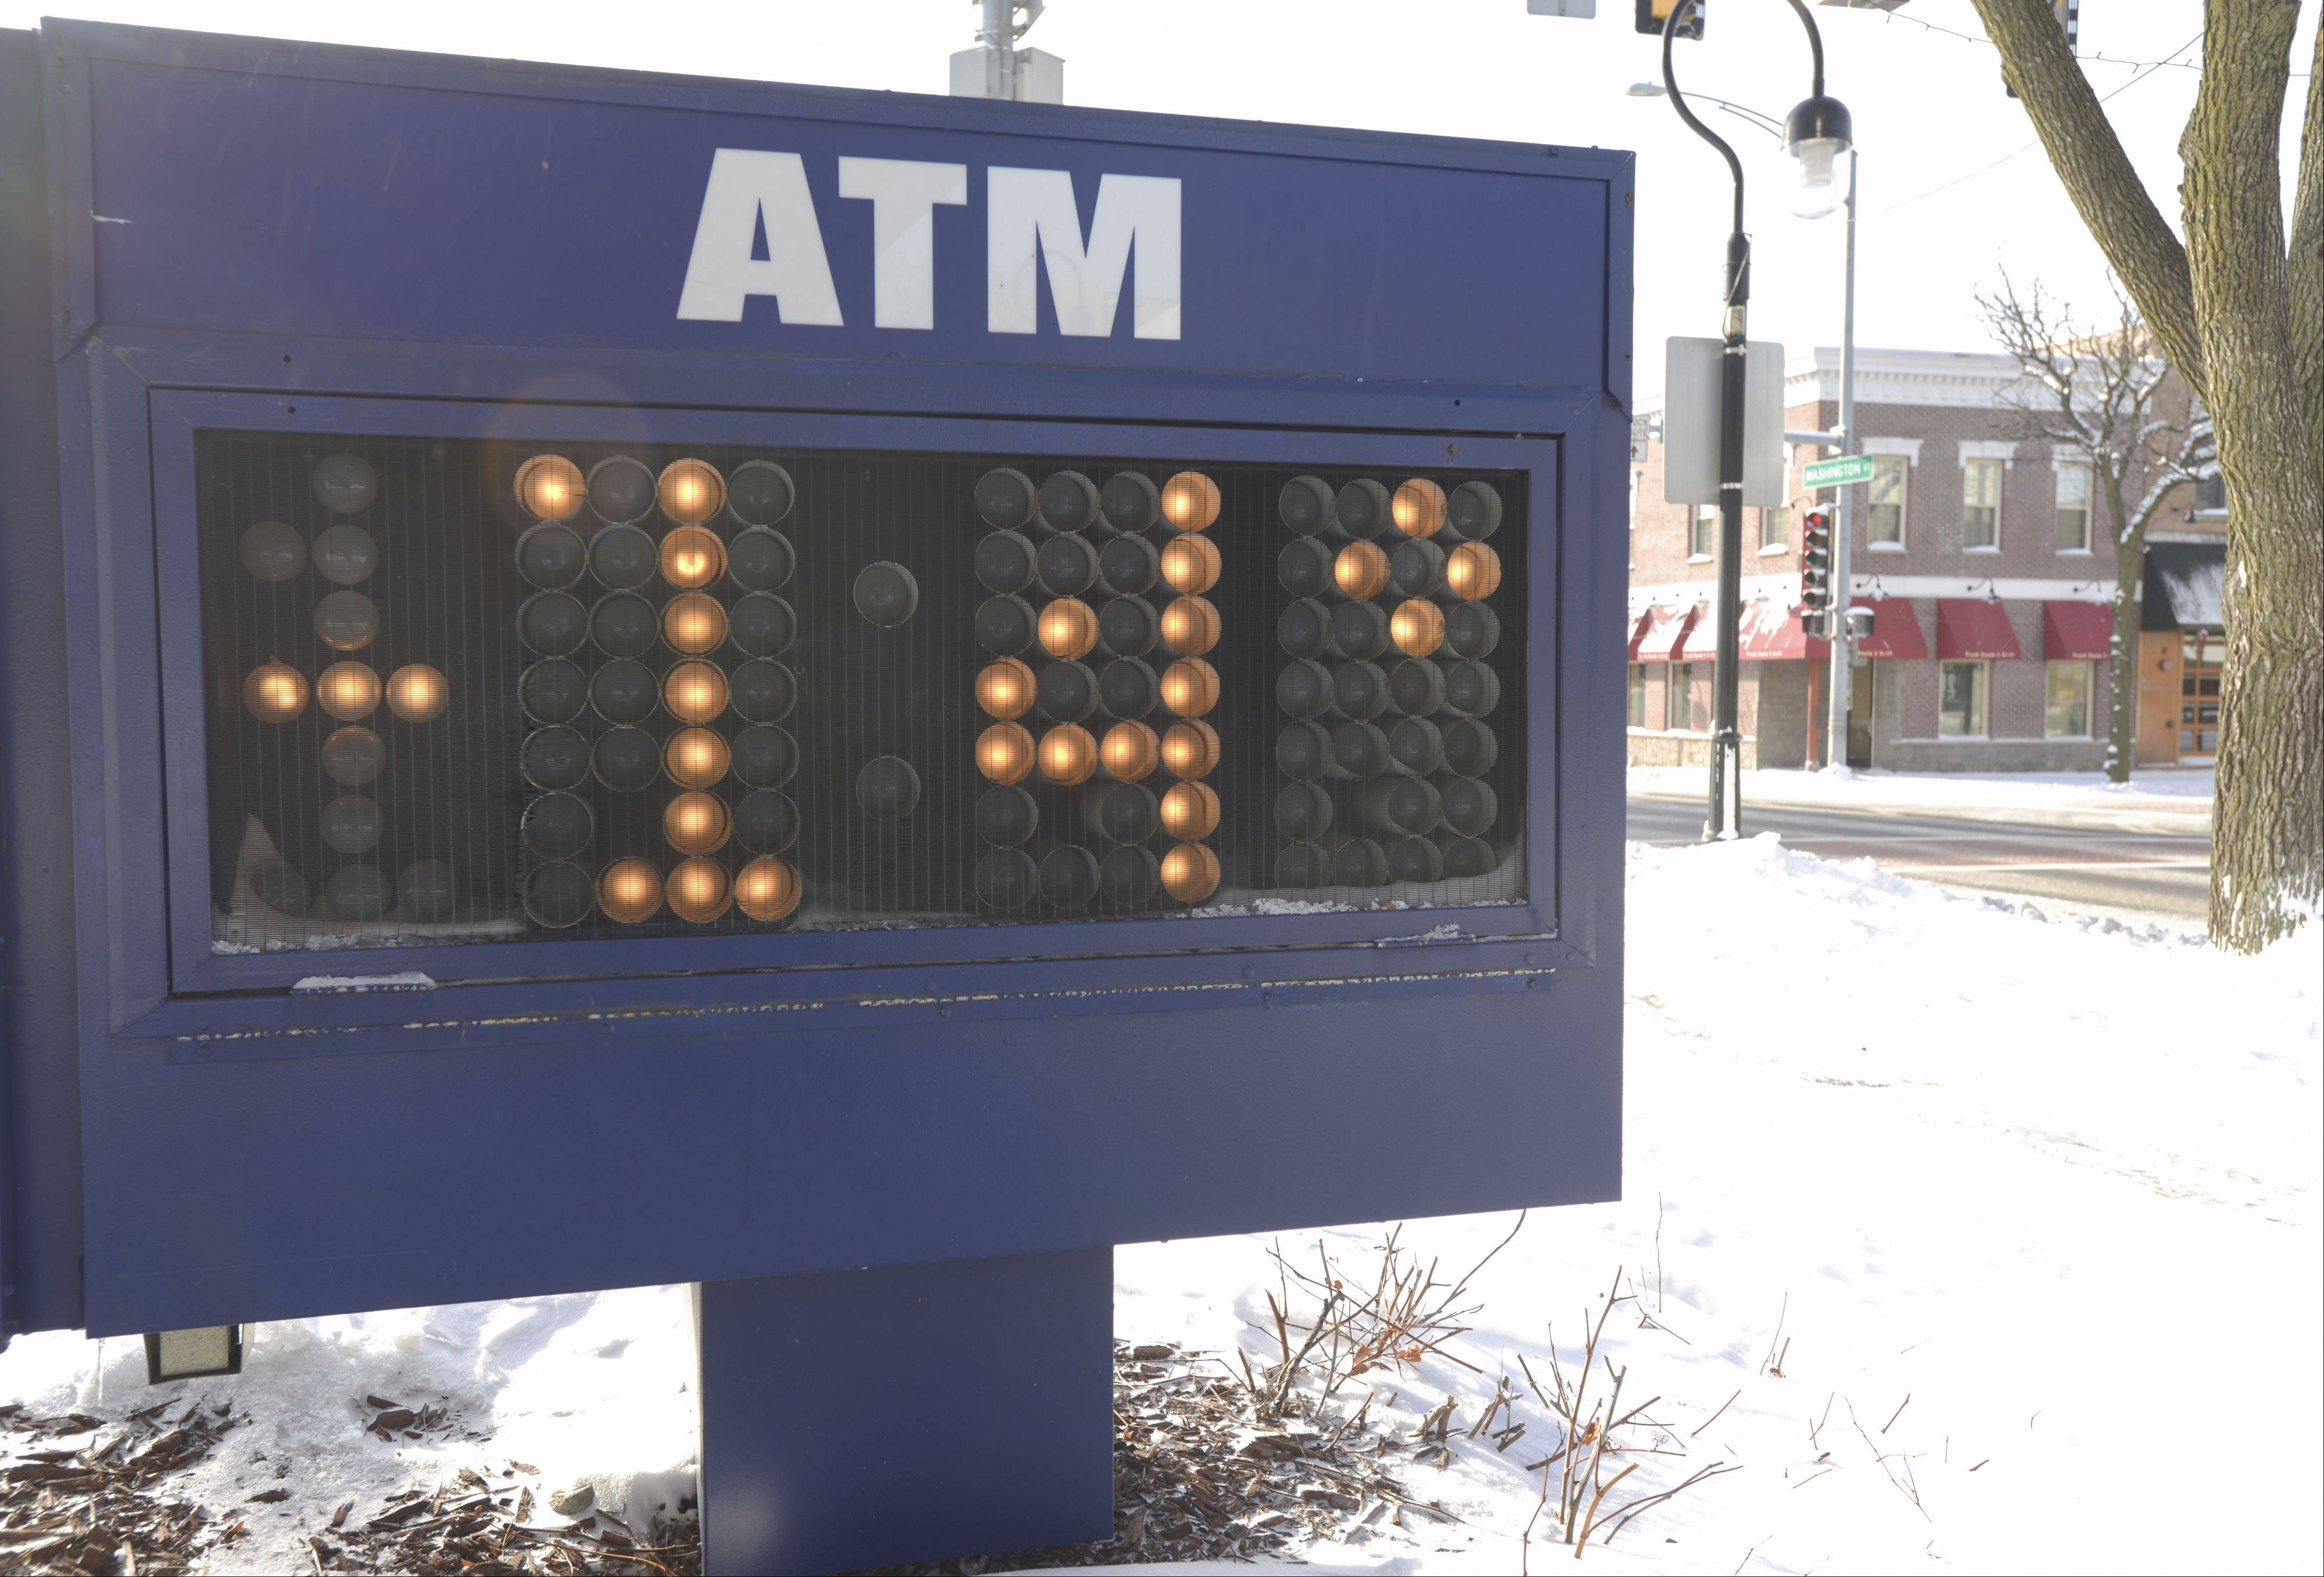 The US Bank sign in downtown Naperville along Washington Street gave a temperature reading of -14 degrees just before 10 a.m.